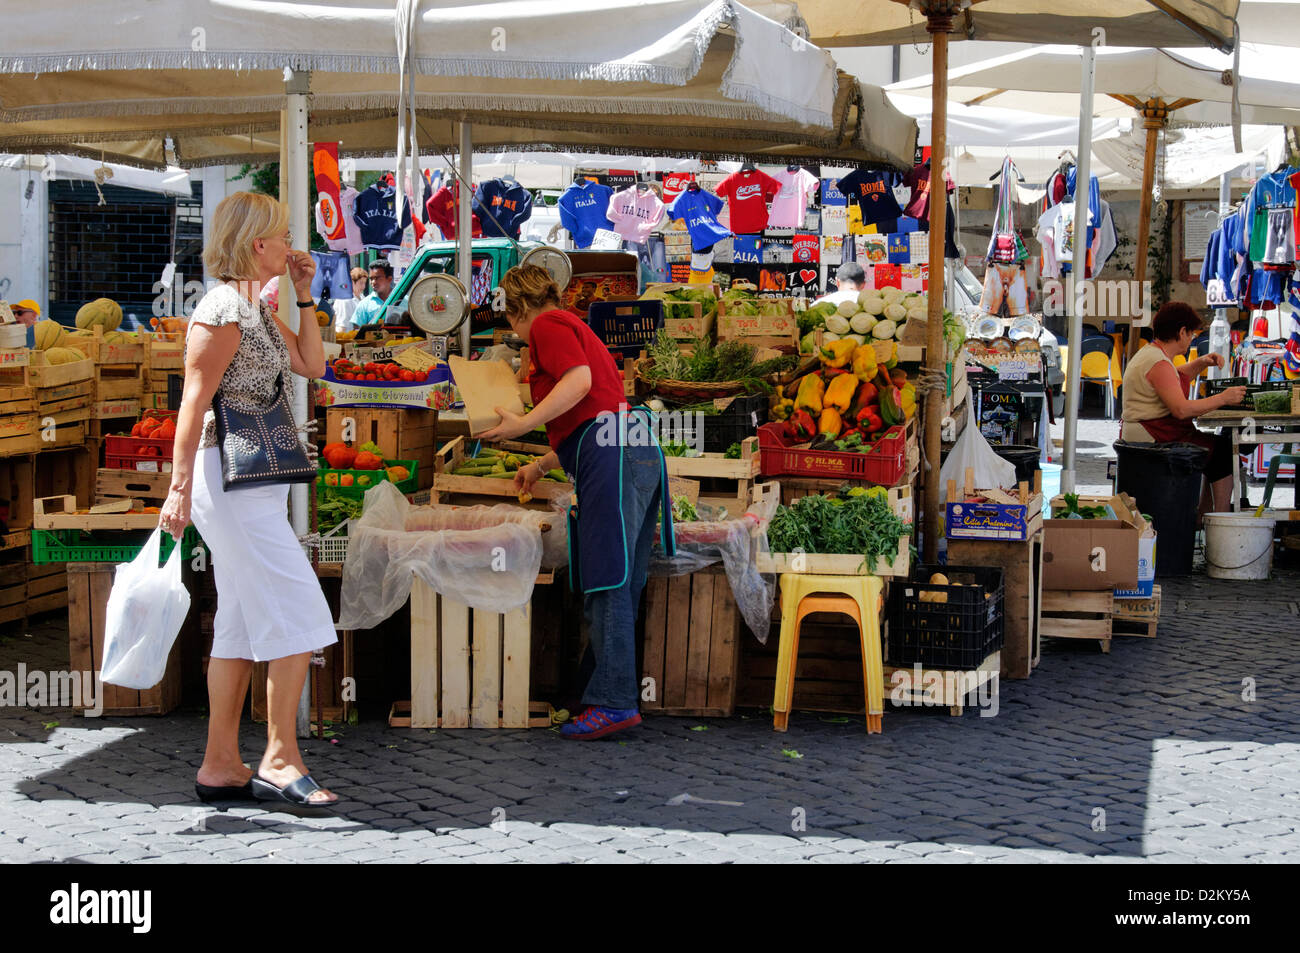 Rome. Italy. View of market stalls selling fruit and vegetables at the piazza known as Campo dei Fiori - Stock Image